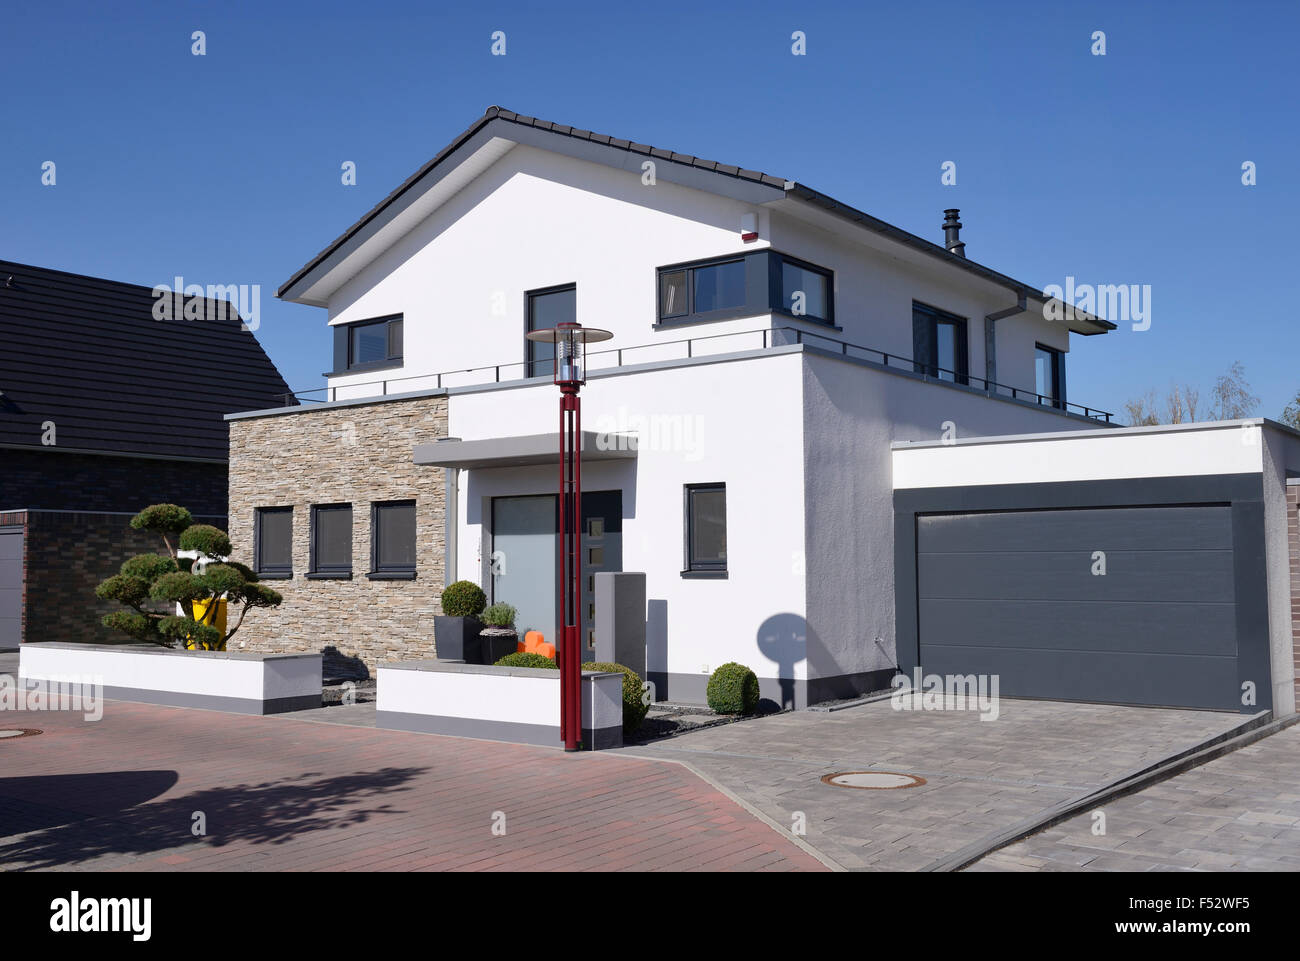 modernes haus mit garage deutschland nordrhein westfalen m nchengladbach stockfoto bild. Black Bedroom Furniture Sets. Home Design Ideas